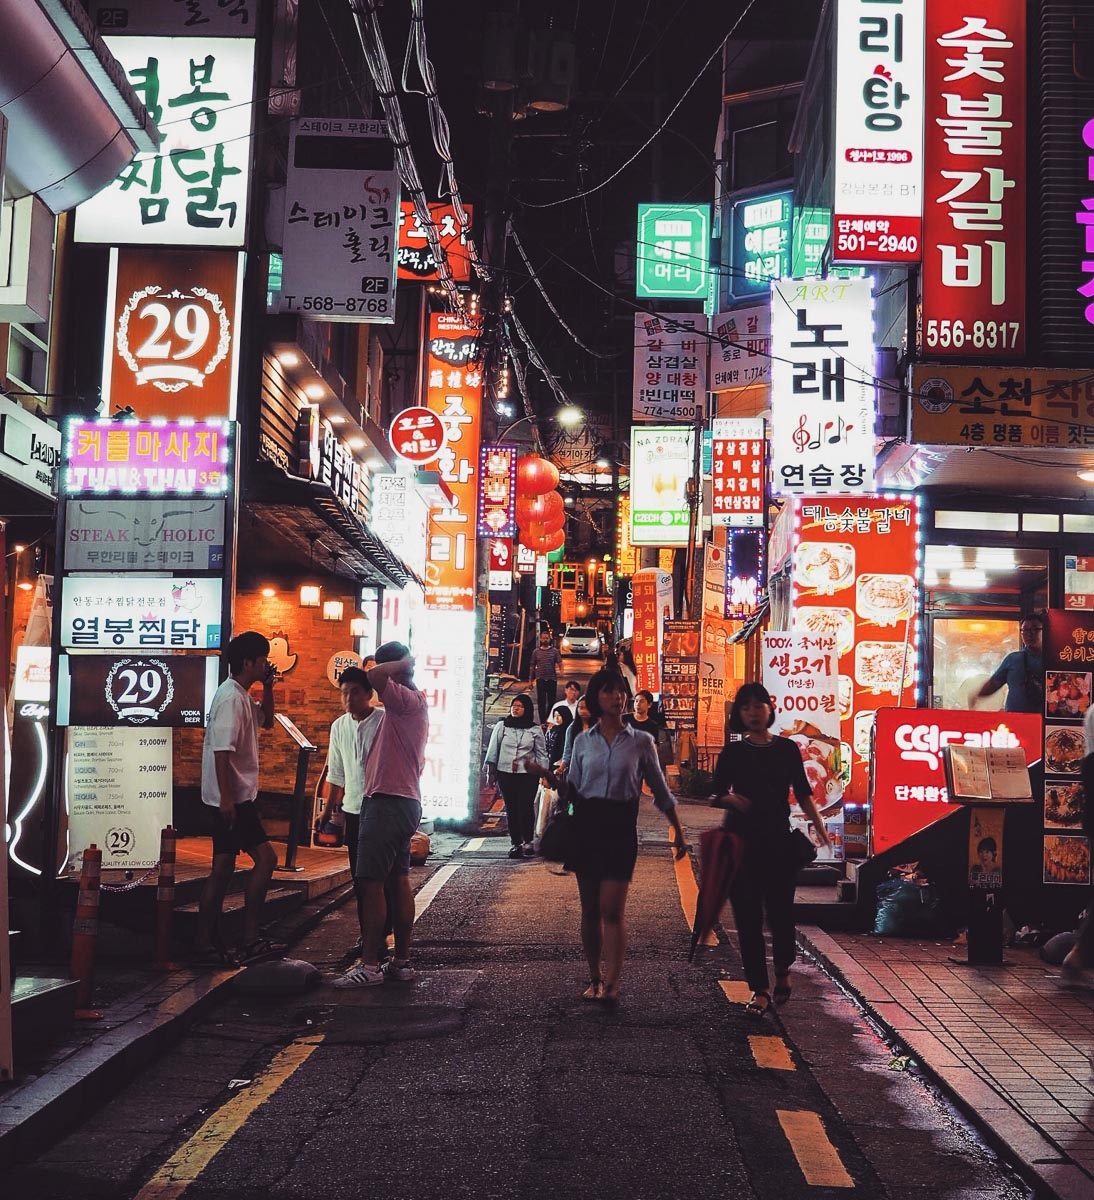 AdventureFaktory Expat Guide in South Korea